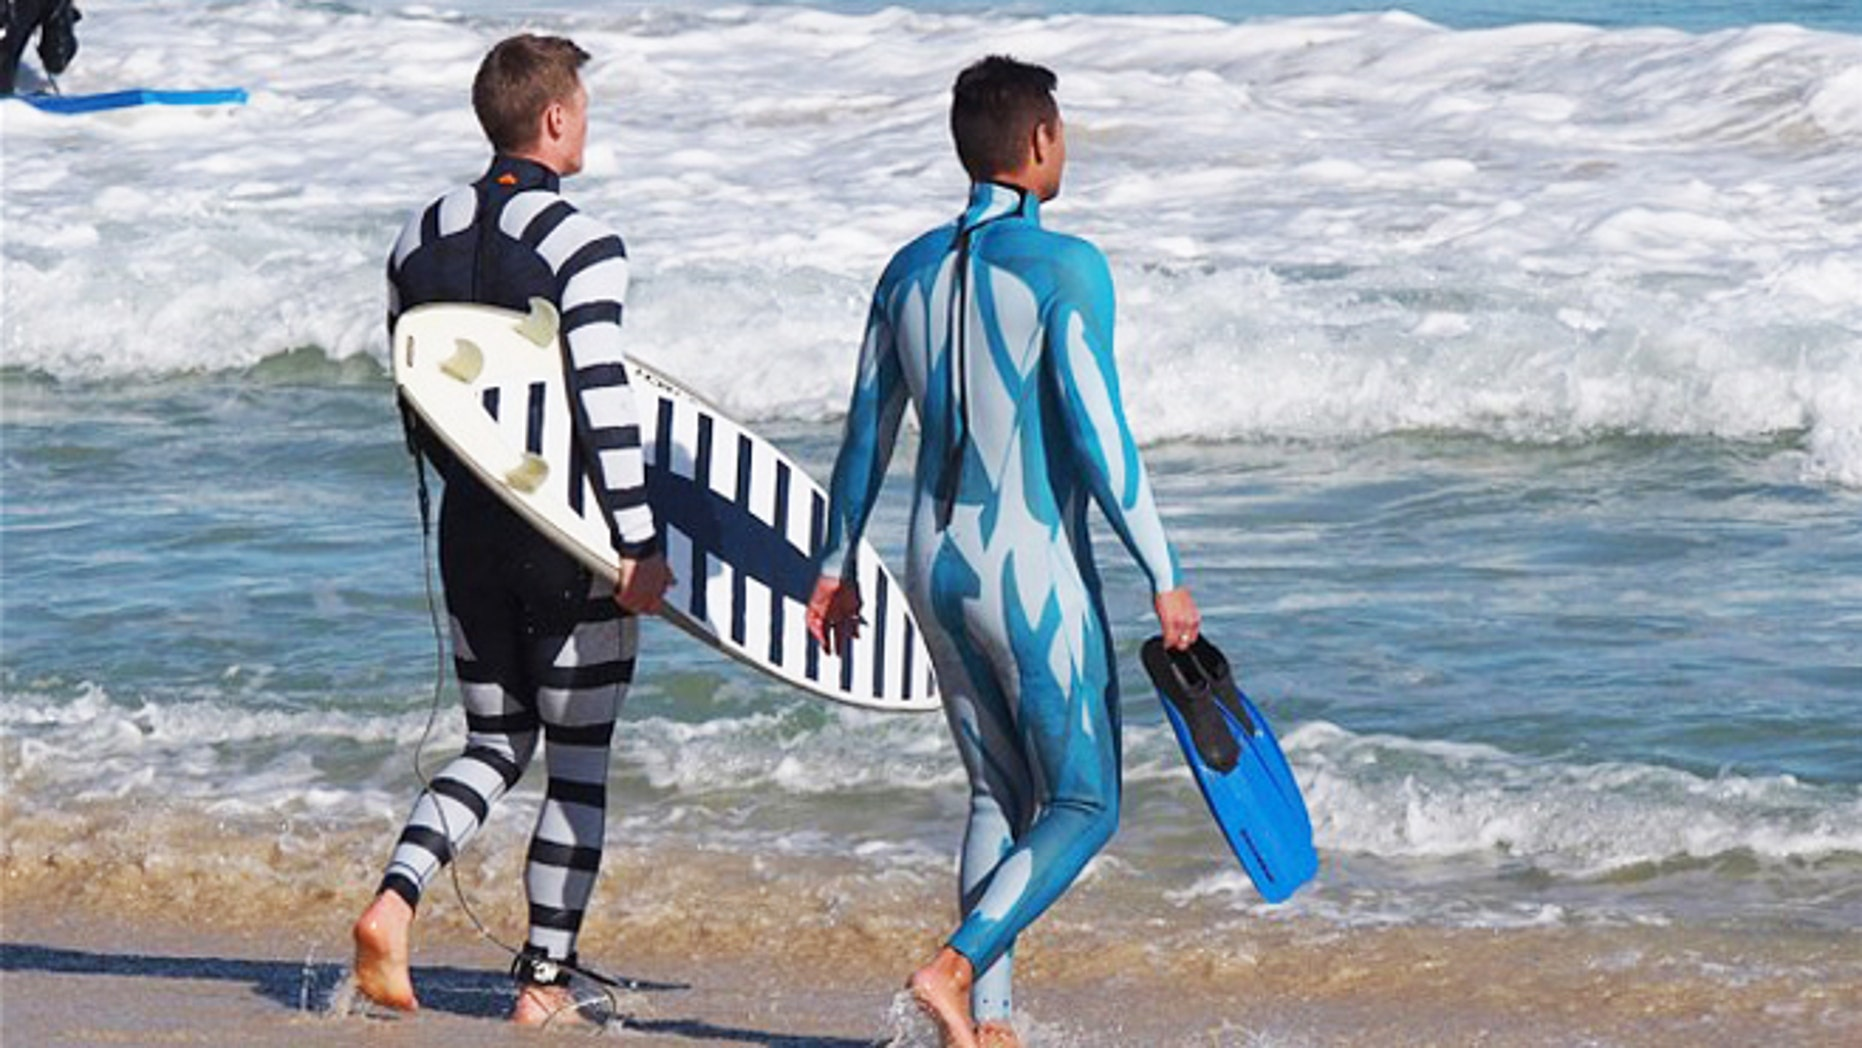 July 18, 2013: A surfer and a diver wearing wetsuits displaying the two styles of shark deterrent technology, with the surfer holding a surfboard also showing the new design.